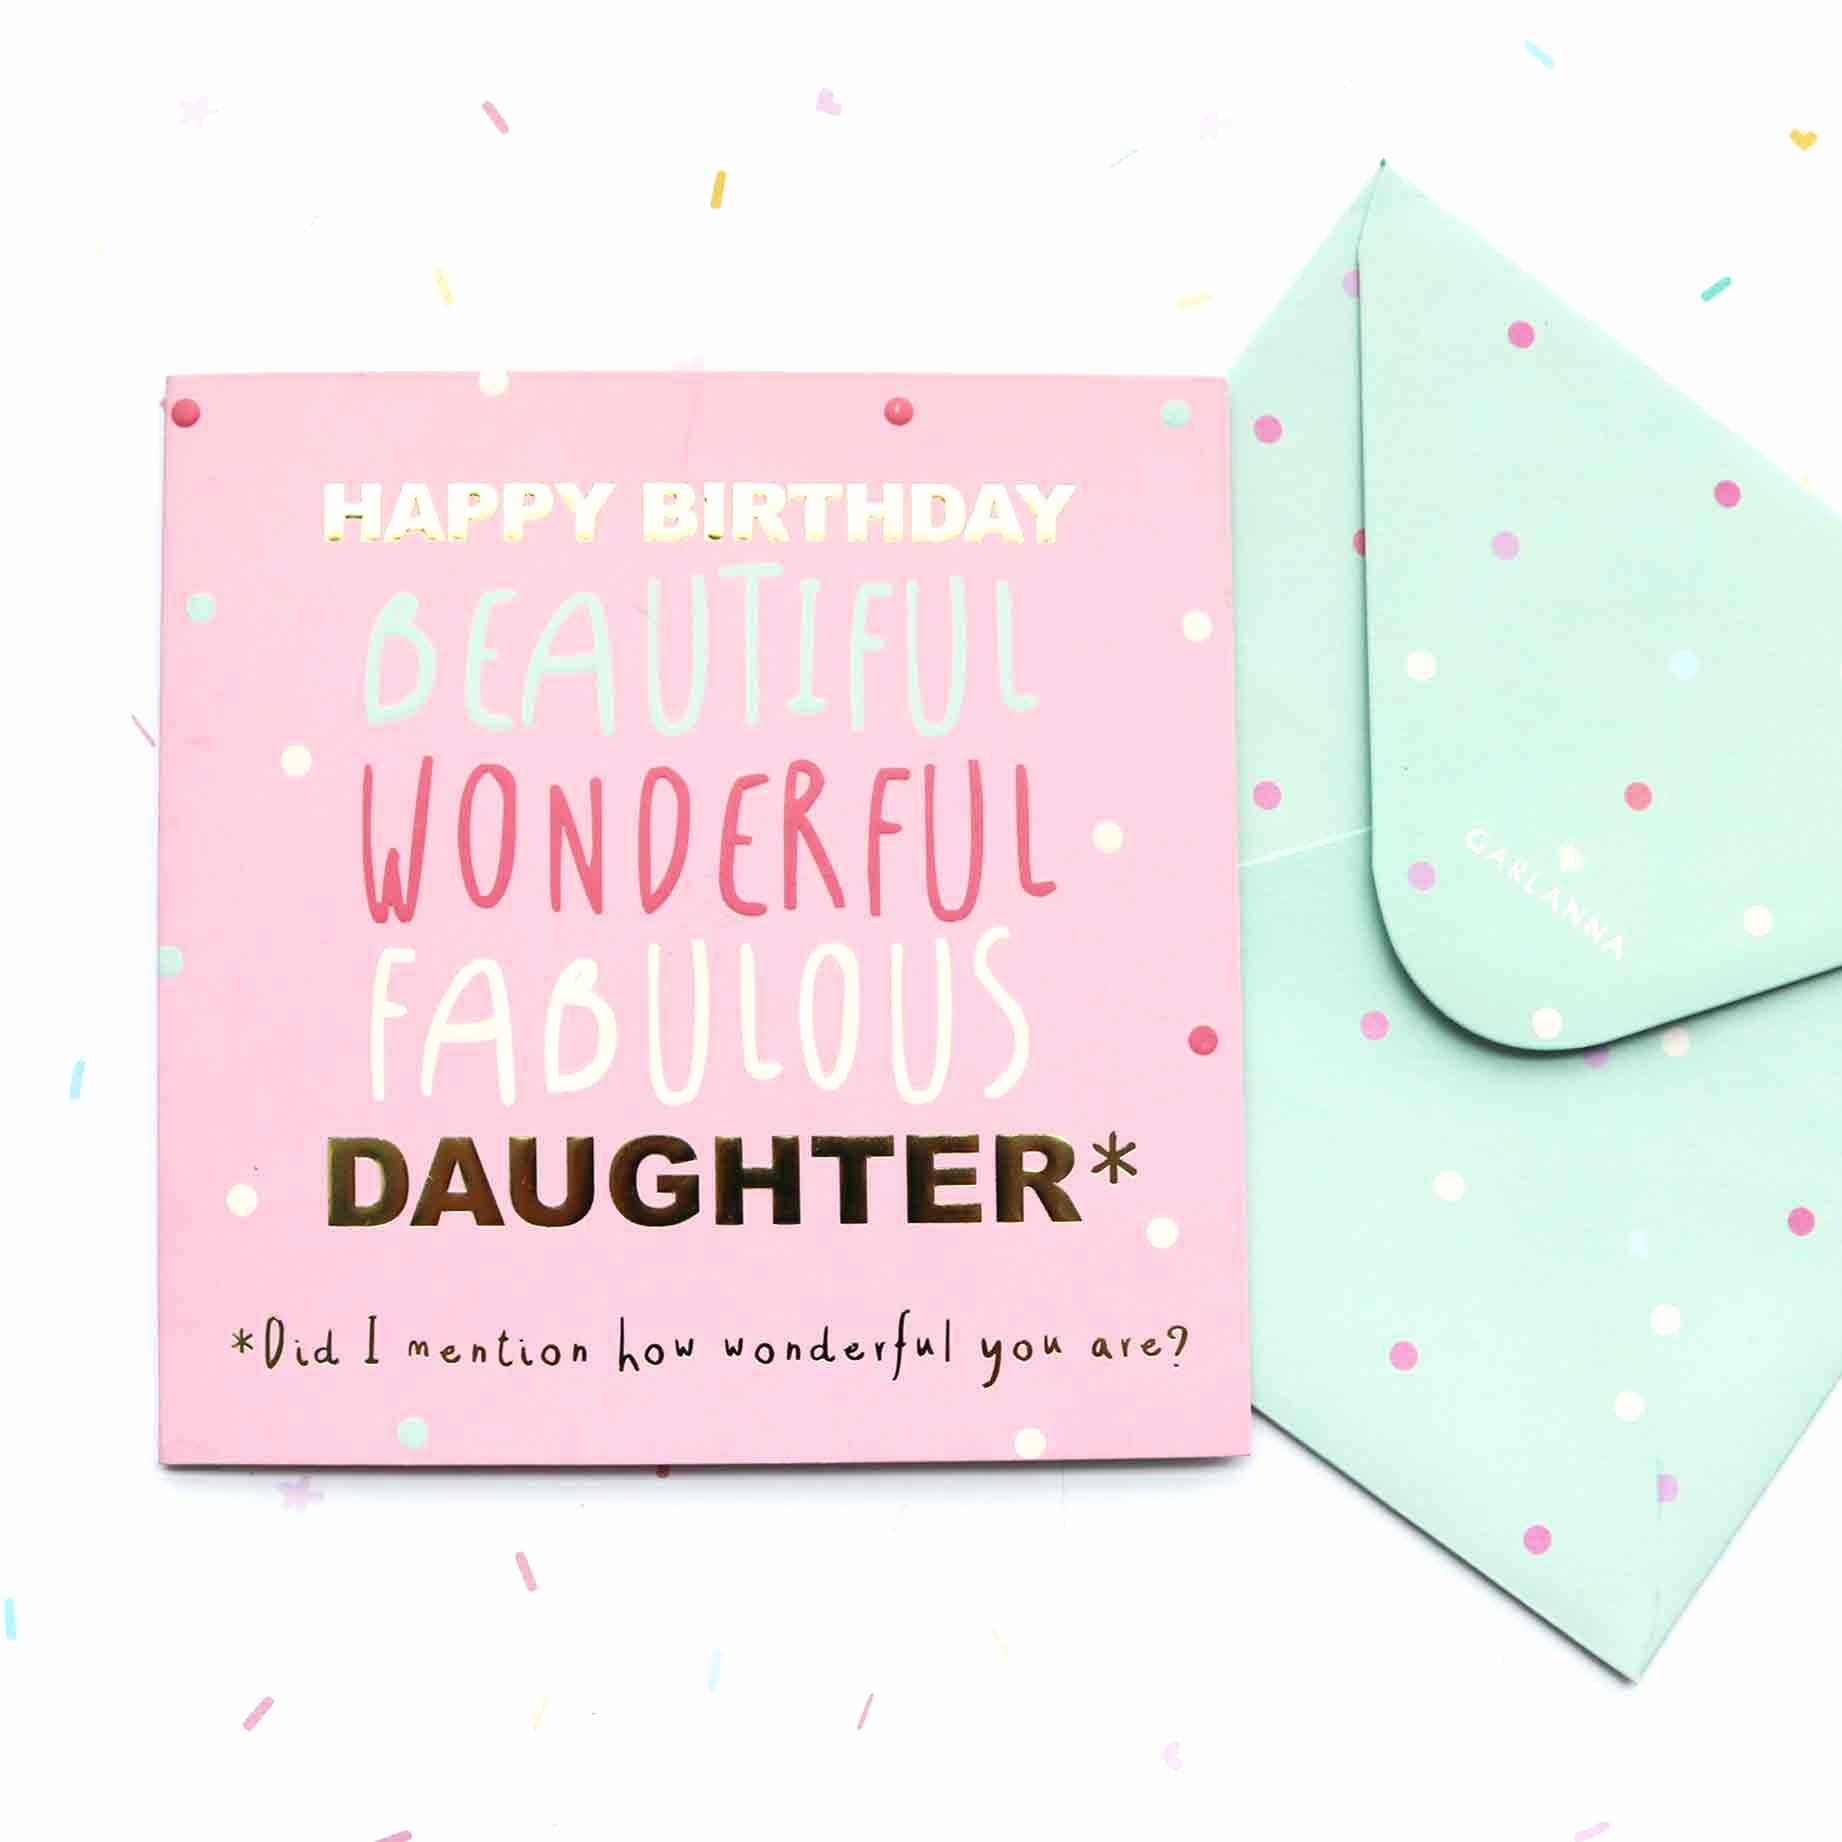 happy 2nd birthday daughter card ; daughter-2nd-birthday-card-best-of-luxury-happy-birthday-cards-for-daughter-eccleshallfc-of-daughter-2nd-birthday-card